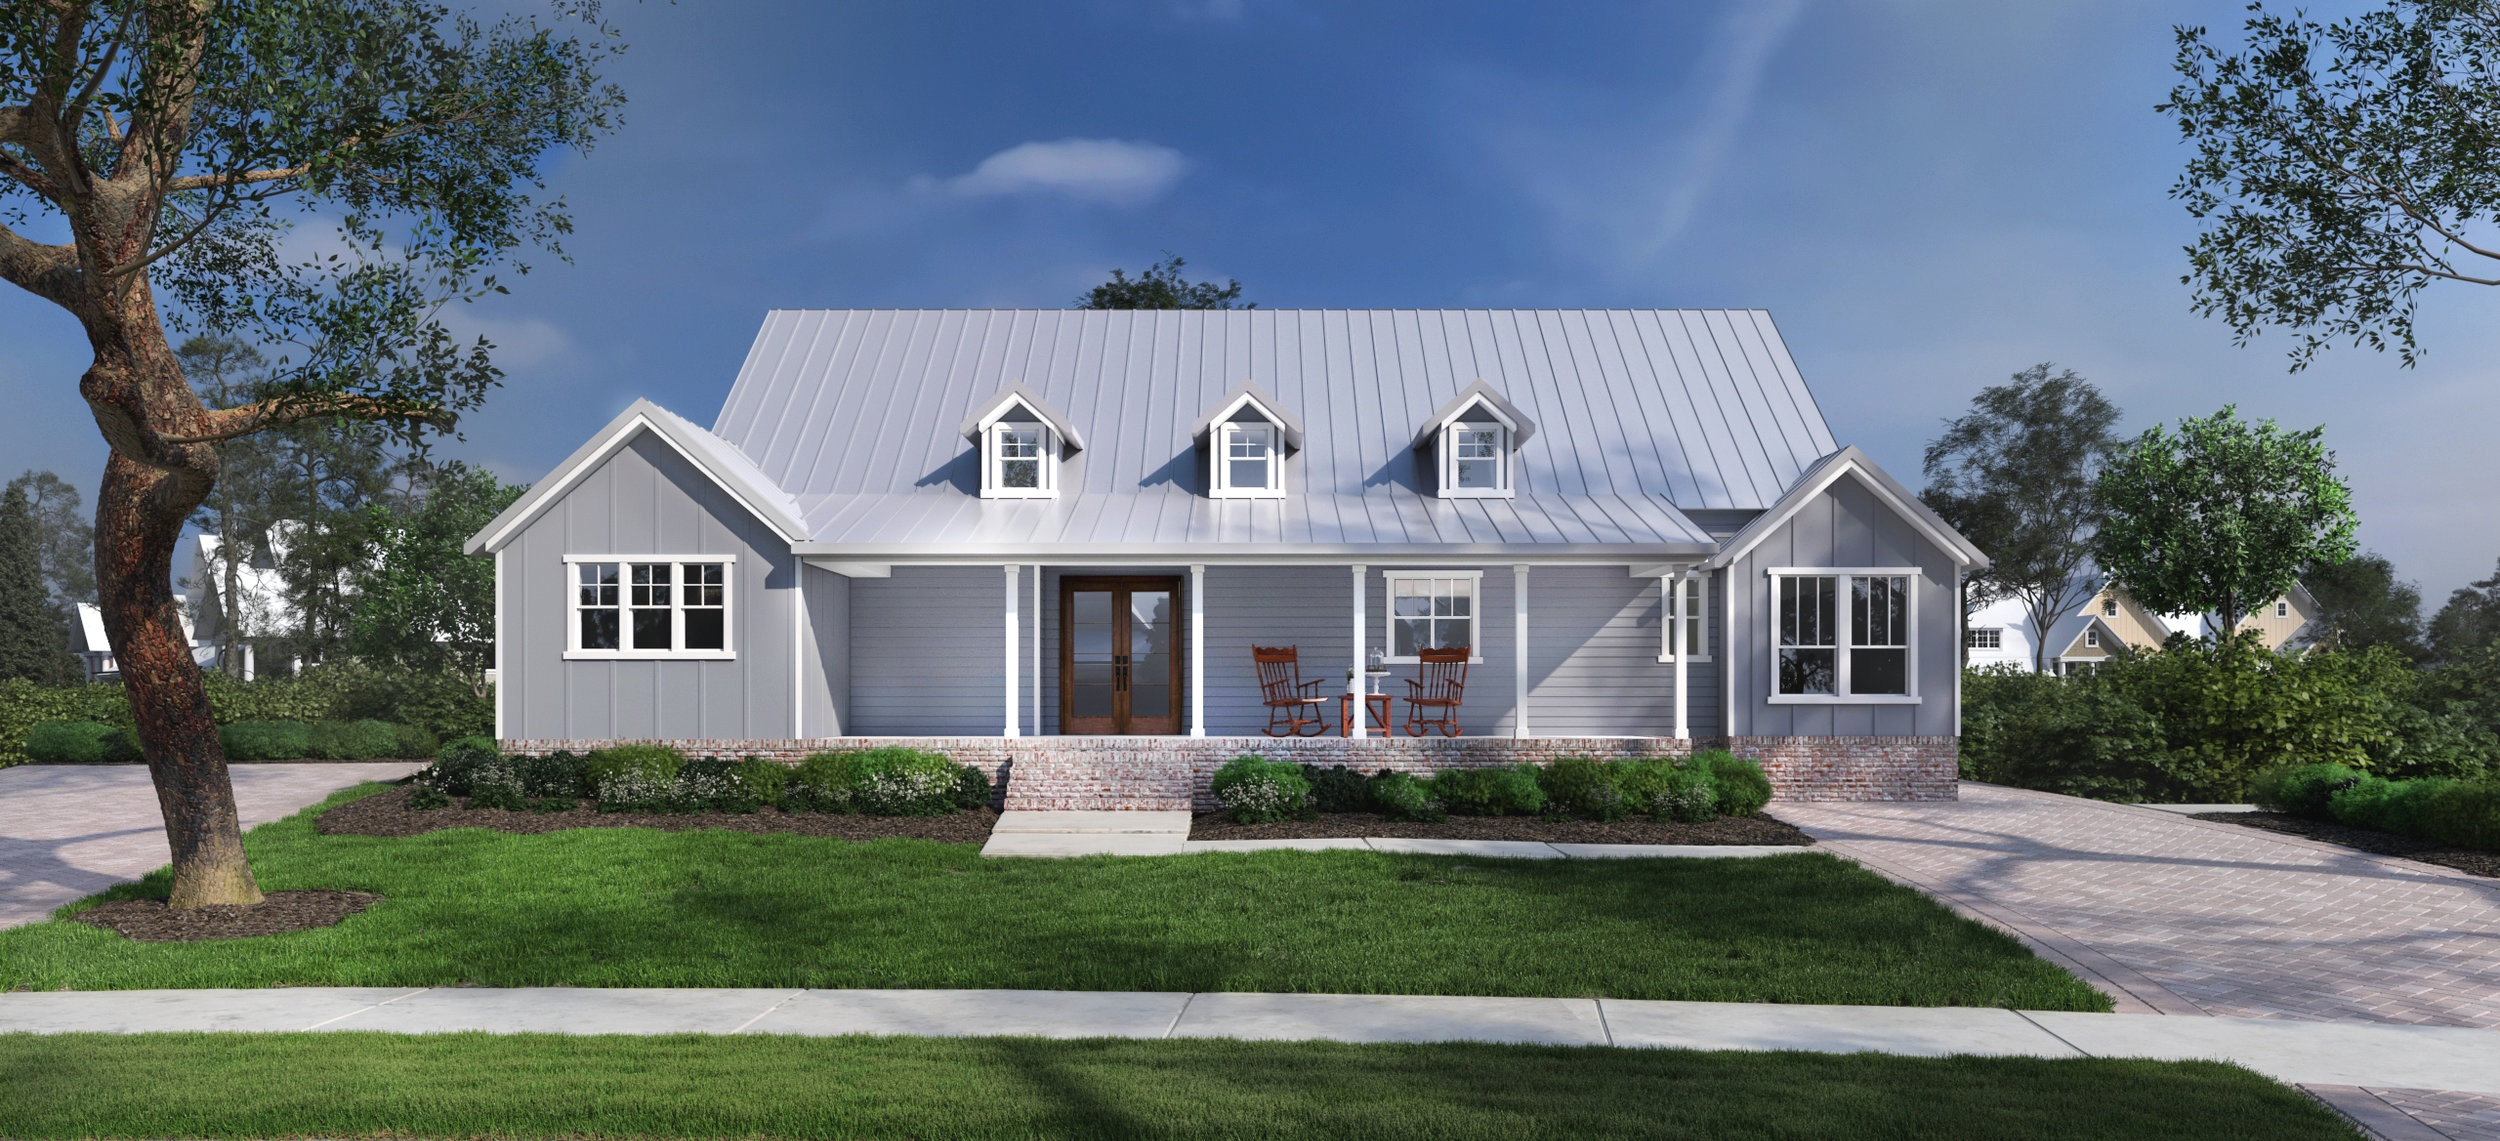 2,602 square feet    Beds: 4    Baths: 2    Introductory Pricing $399,450